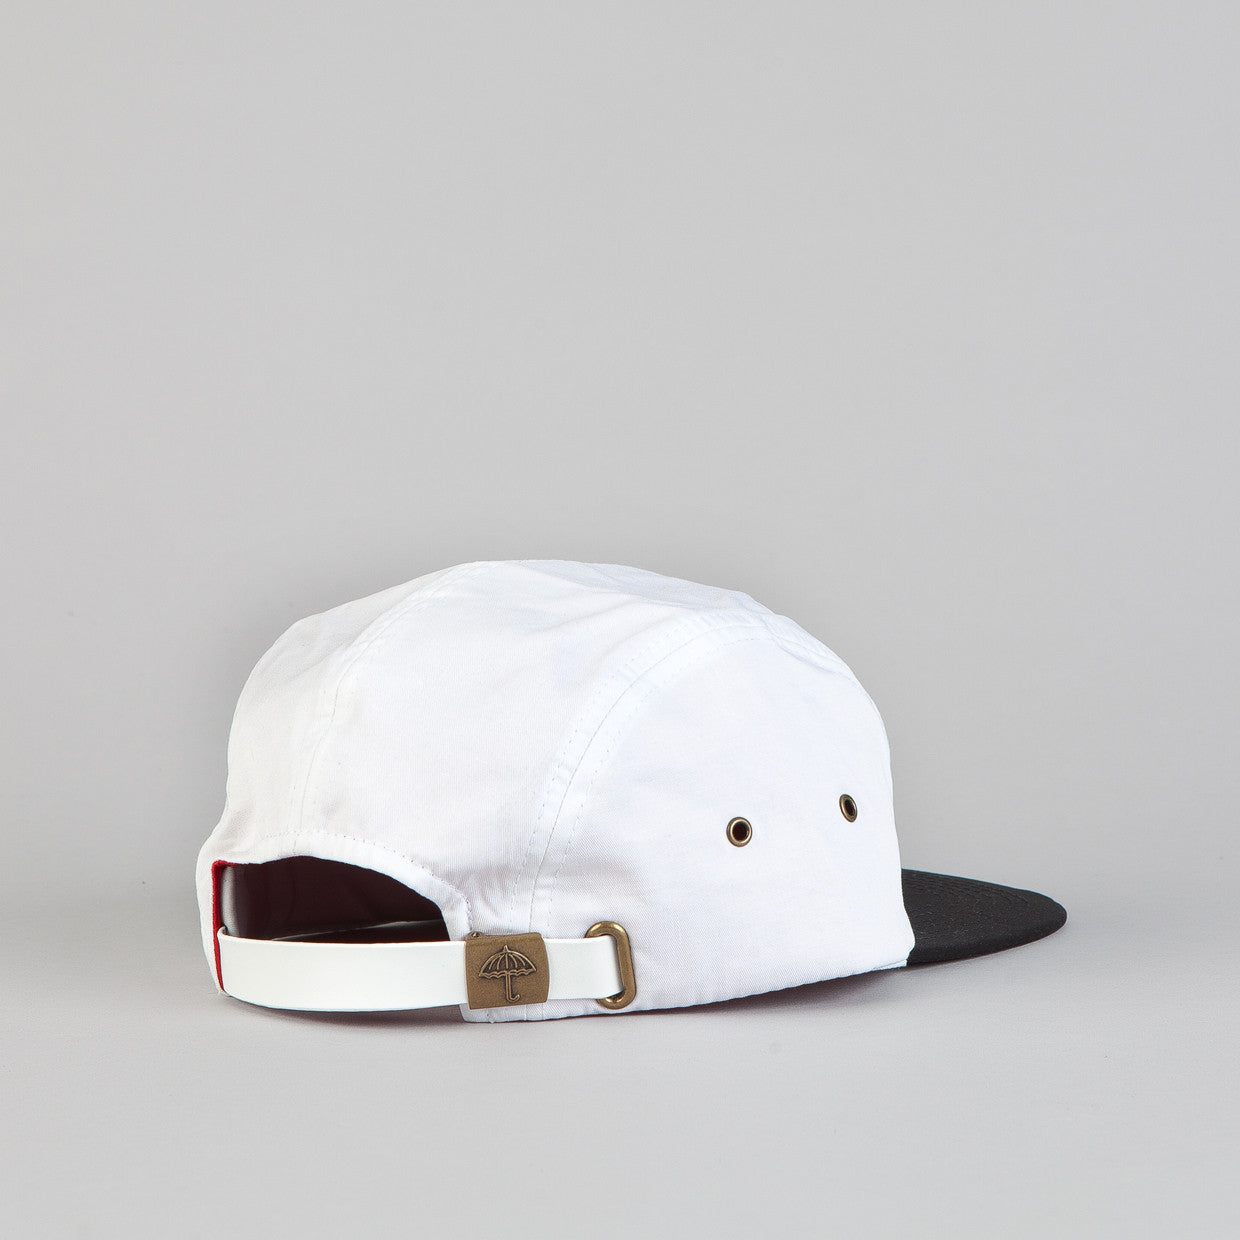 Helas Guccit 5 Panel Cap White / Black Peak